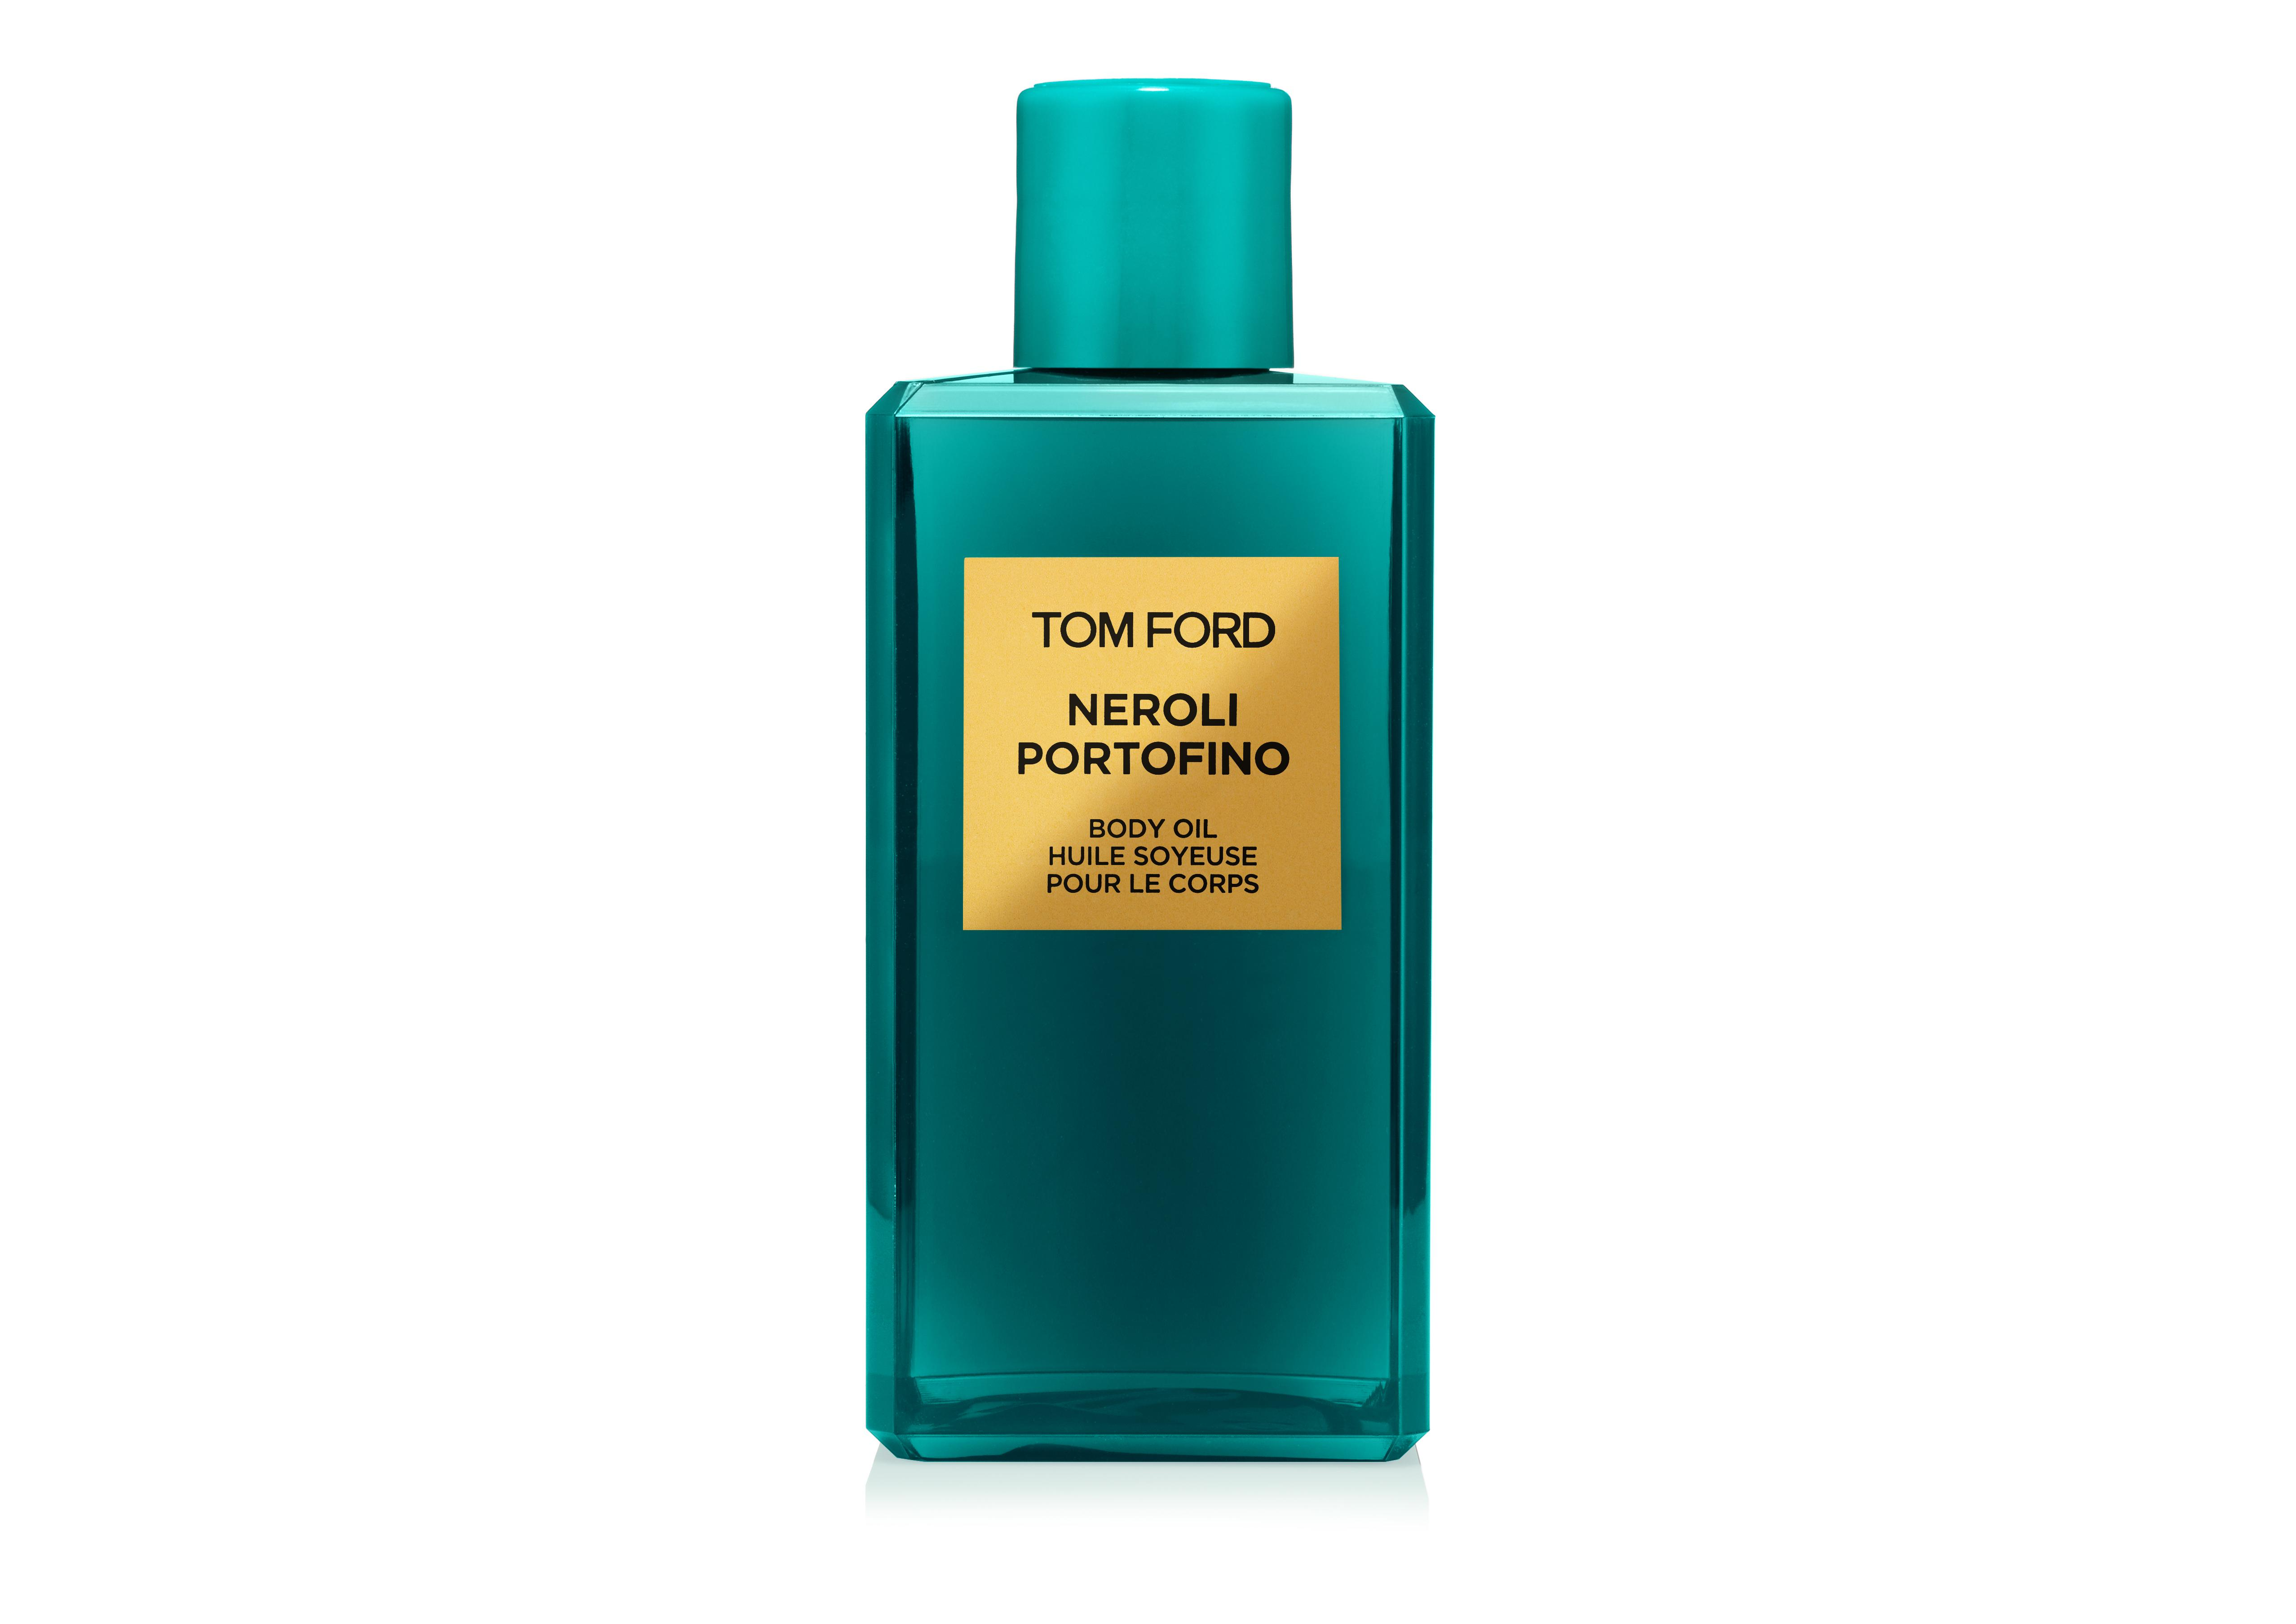 Neroli Portofino Body Oil A thumbnail